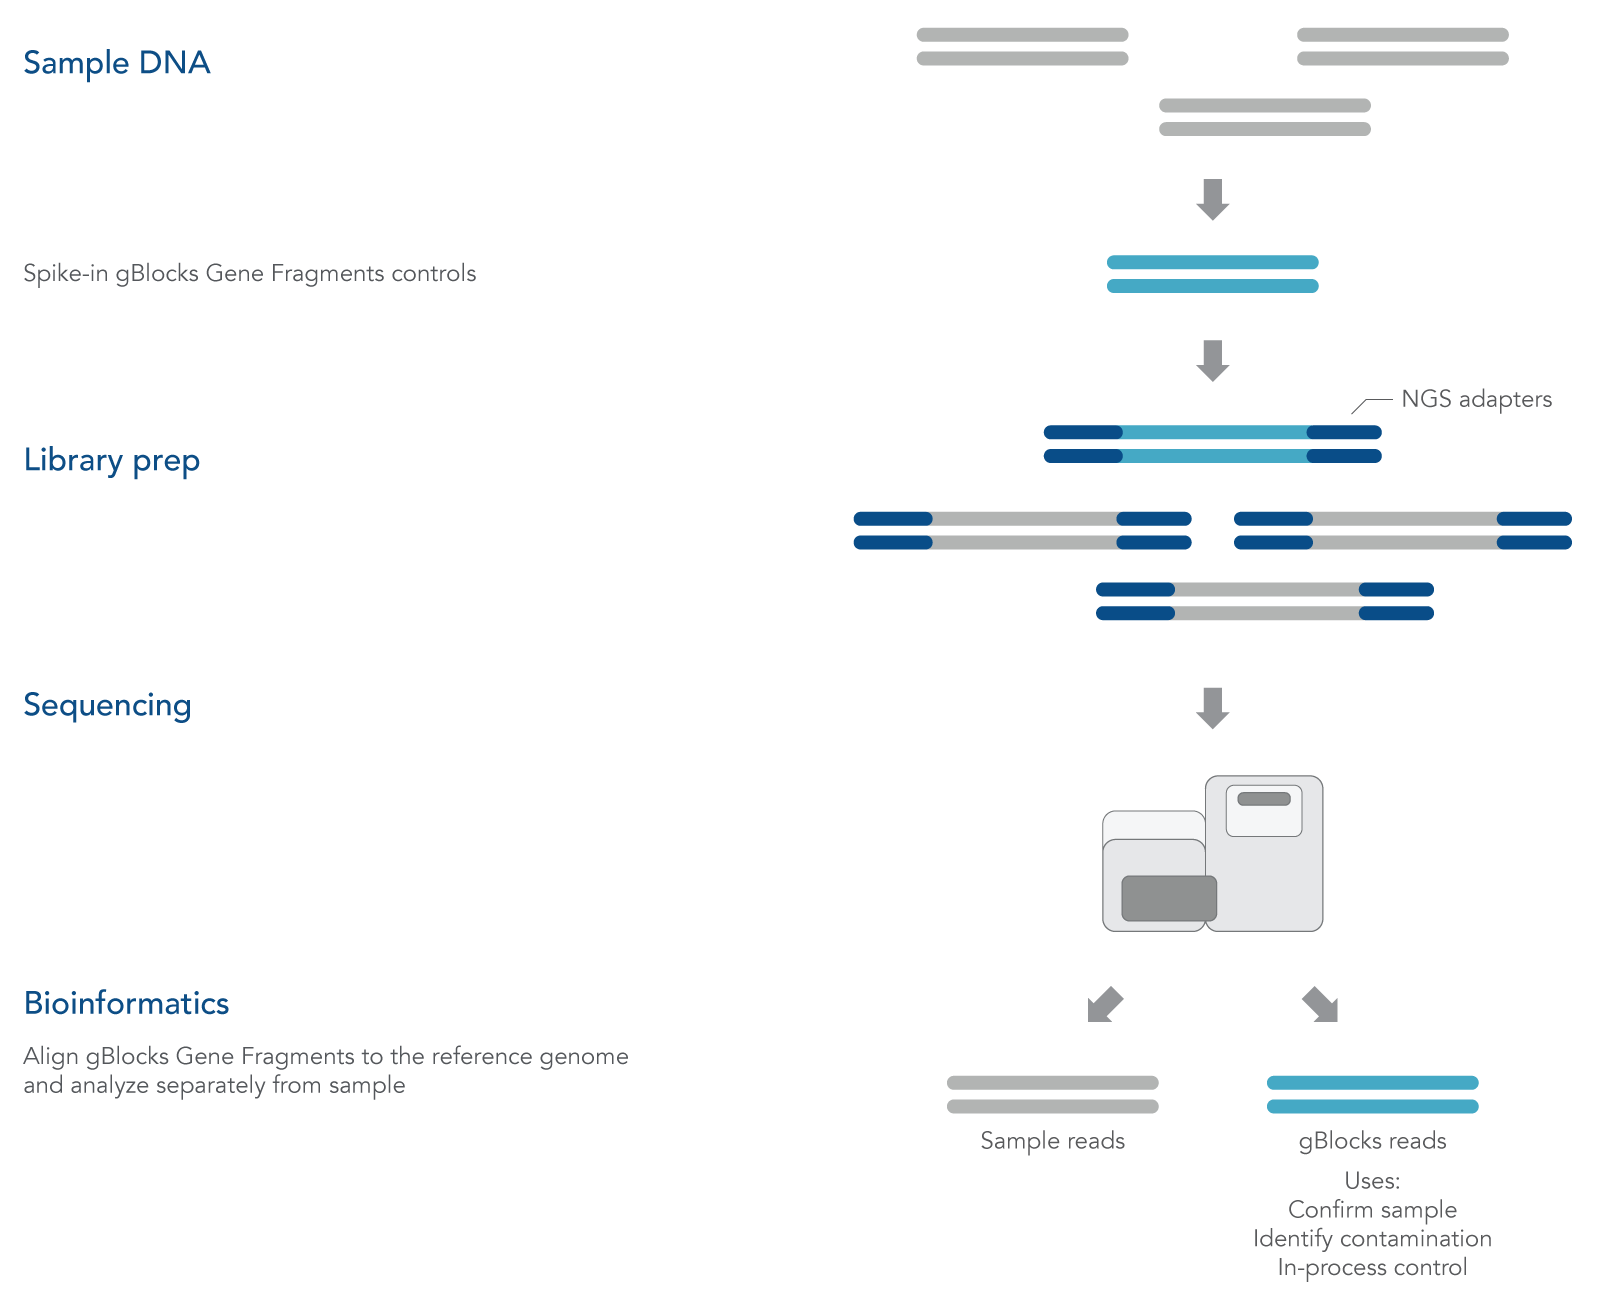 gBlocks Gene Fragments are spiked into a next generation sequencing workflow.